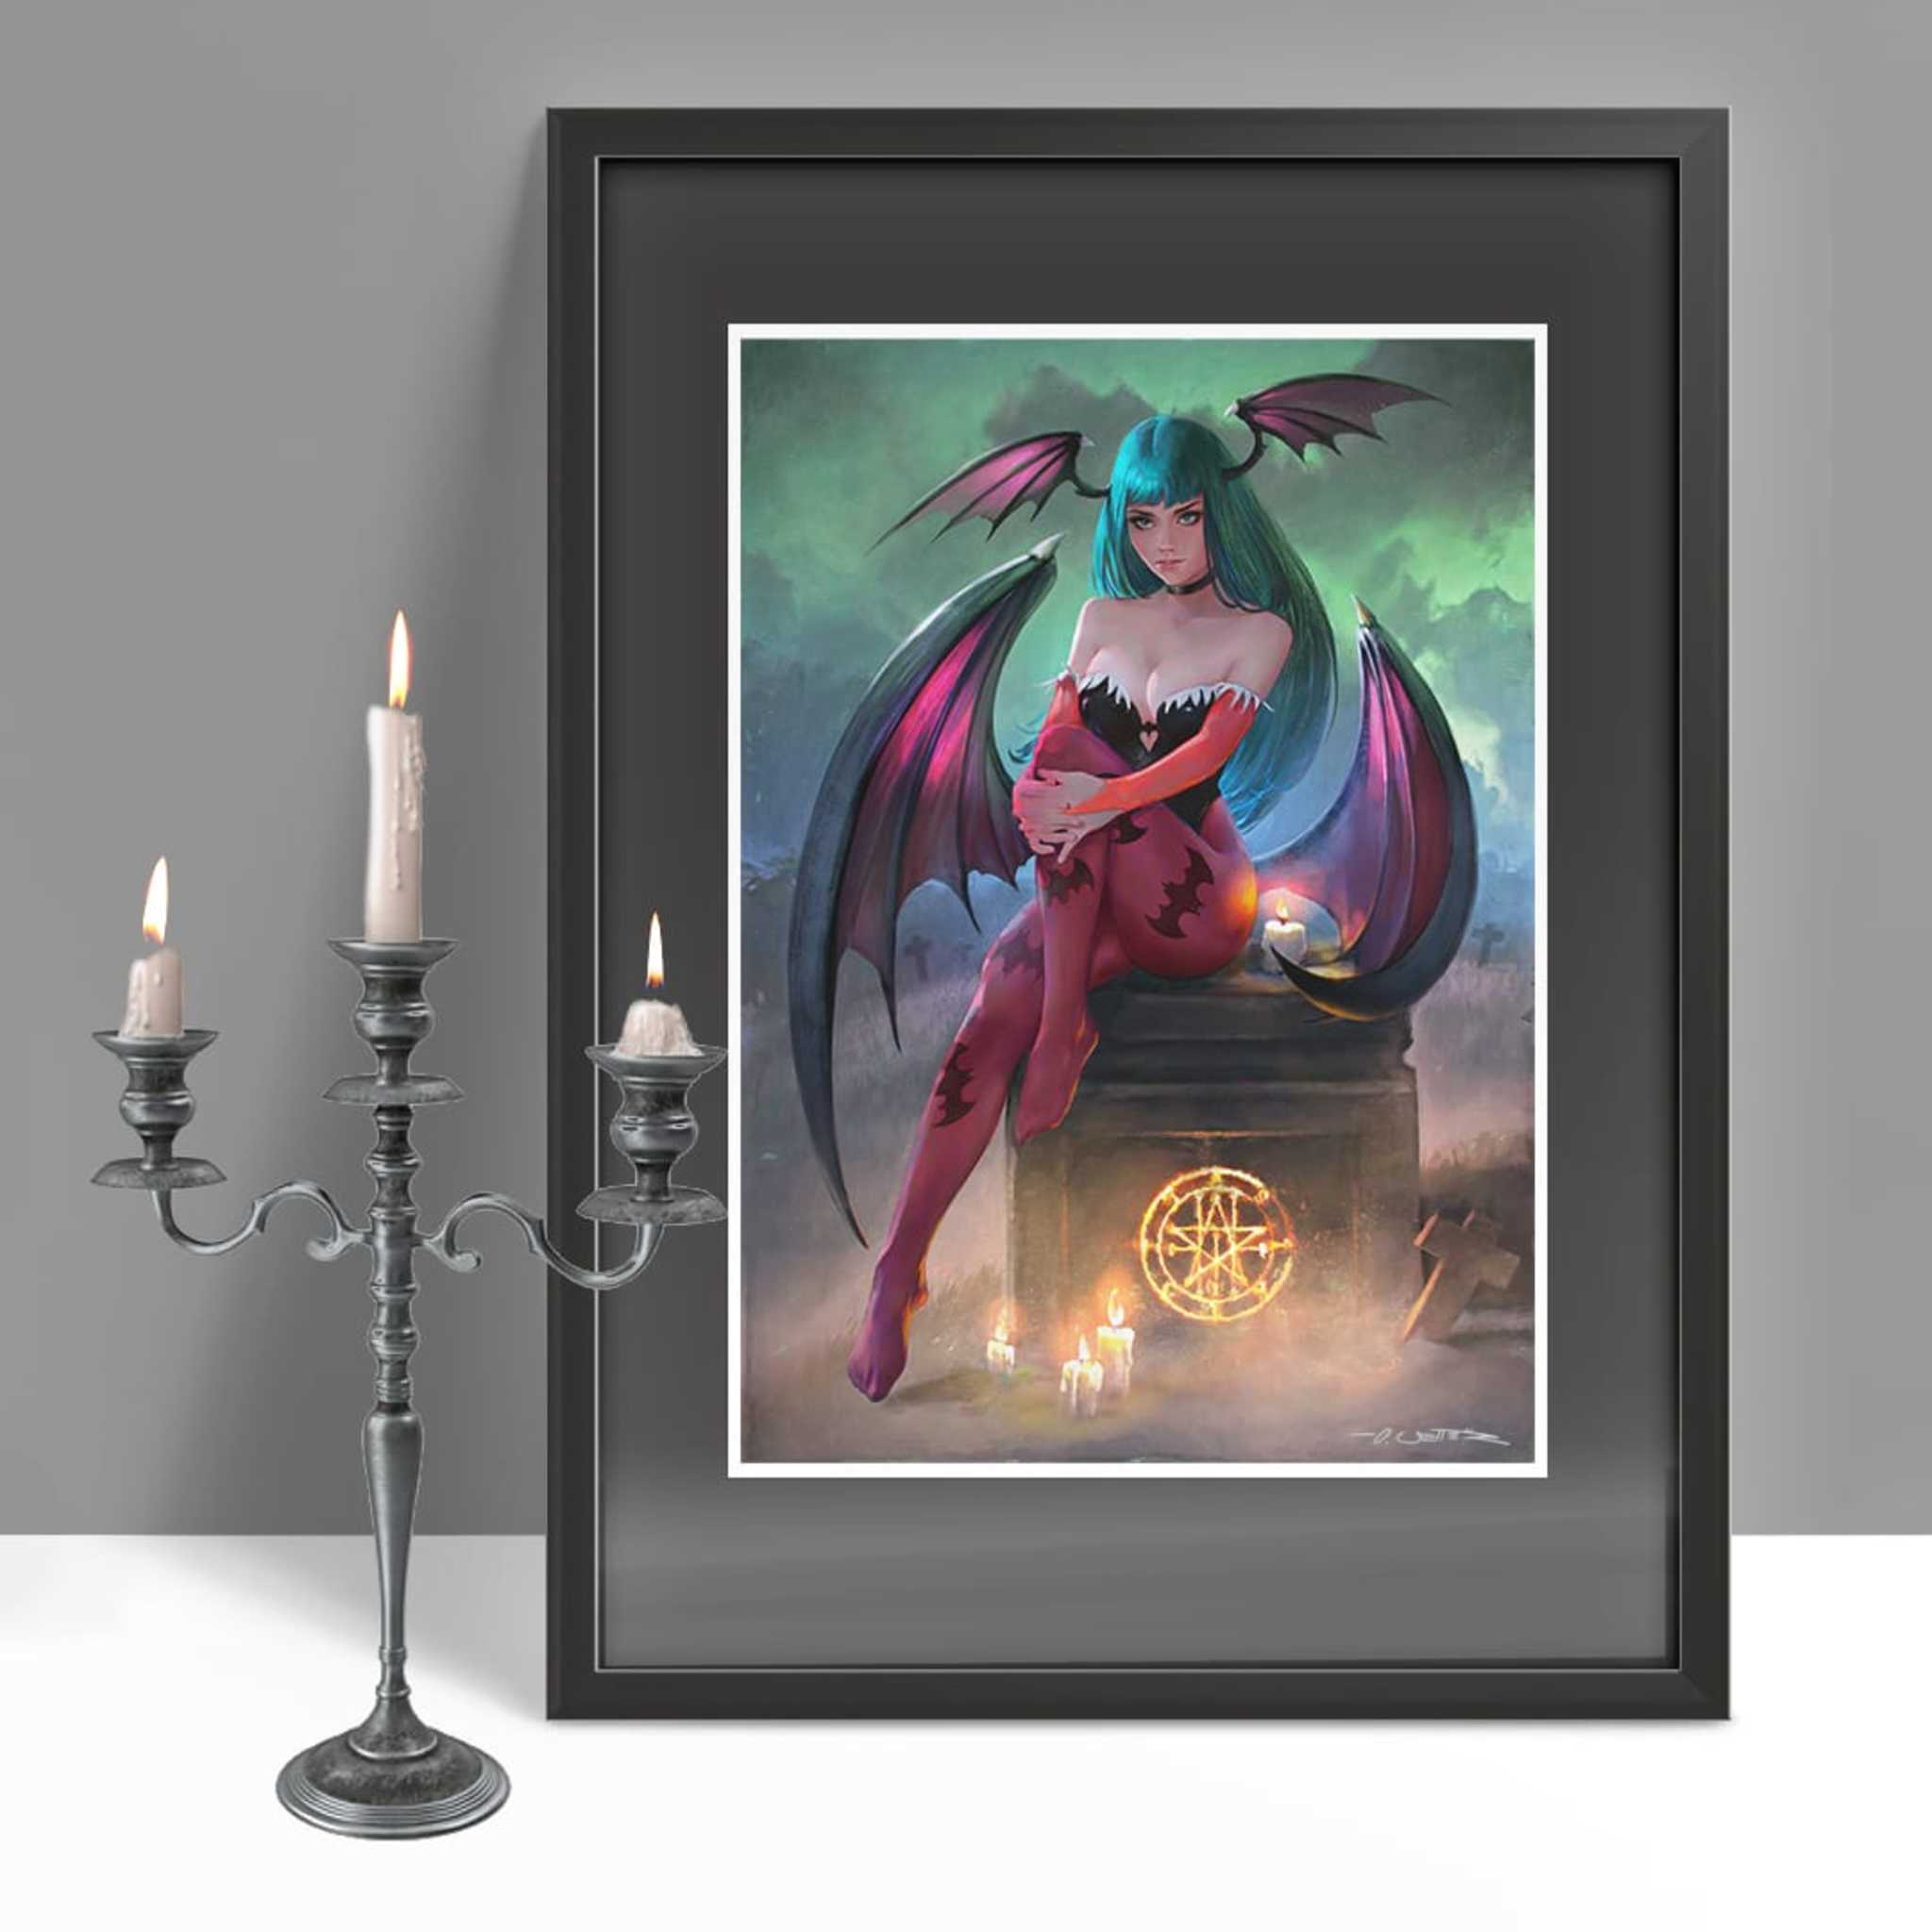 Morrigan framed 1